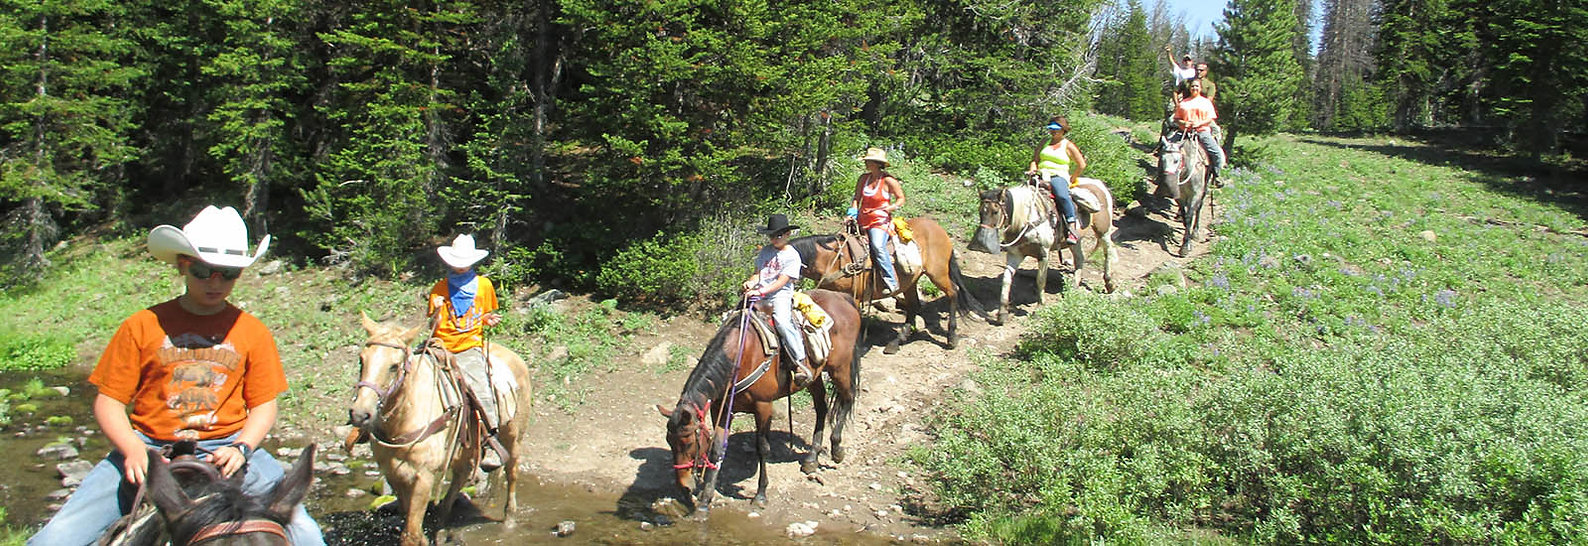 Guests horseback riding at Brooks Lake Lodge, an all inclusive resort in Dubois, WY